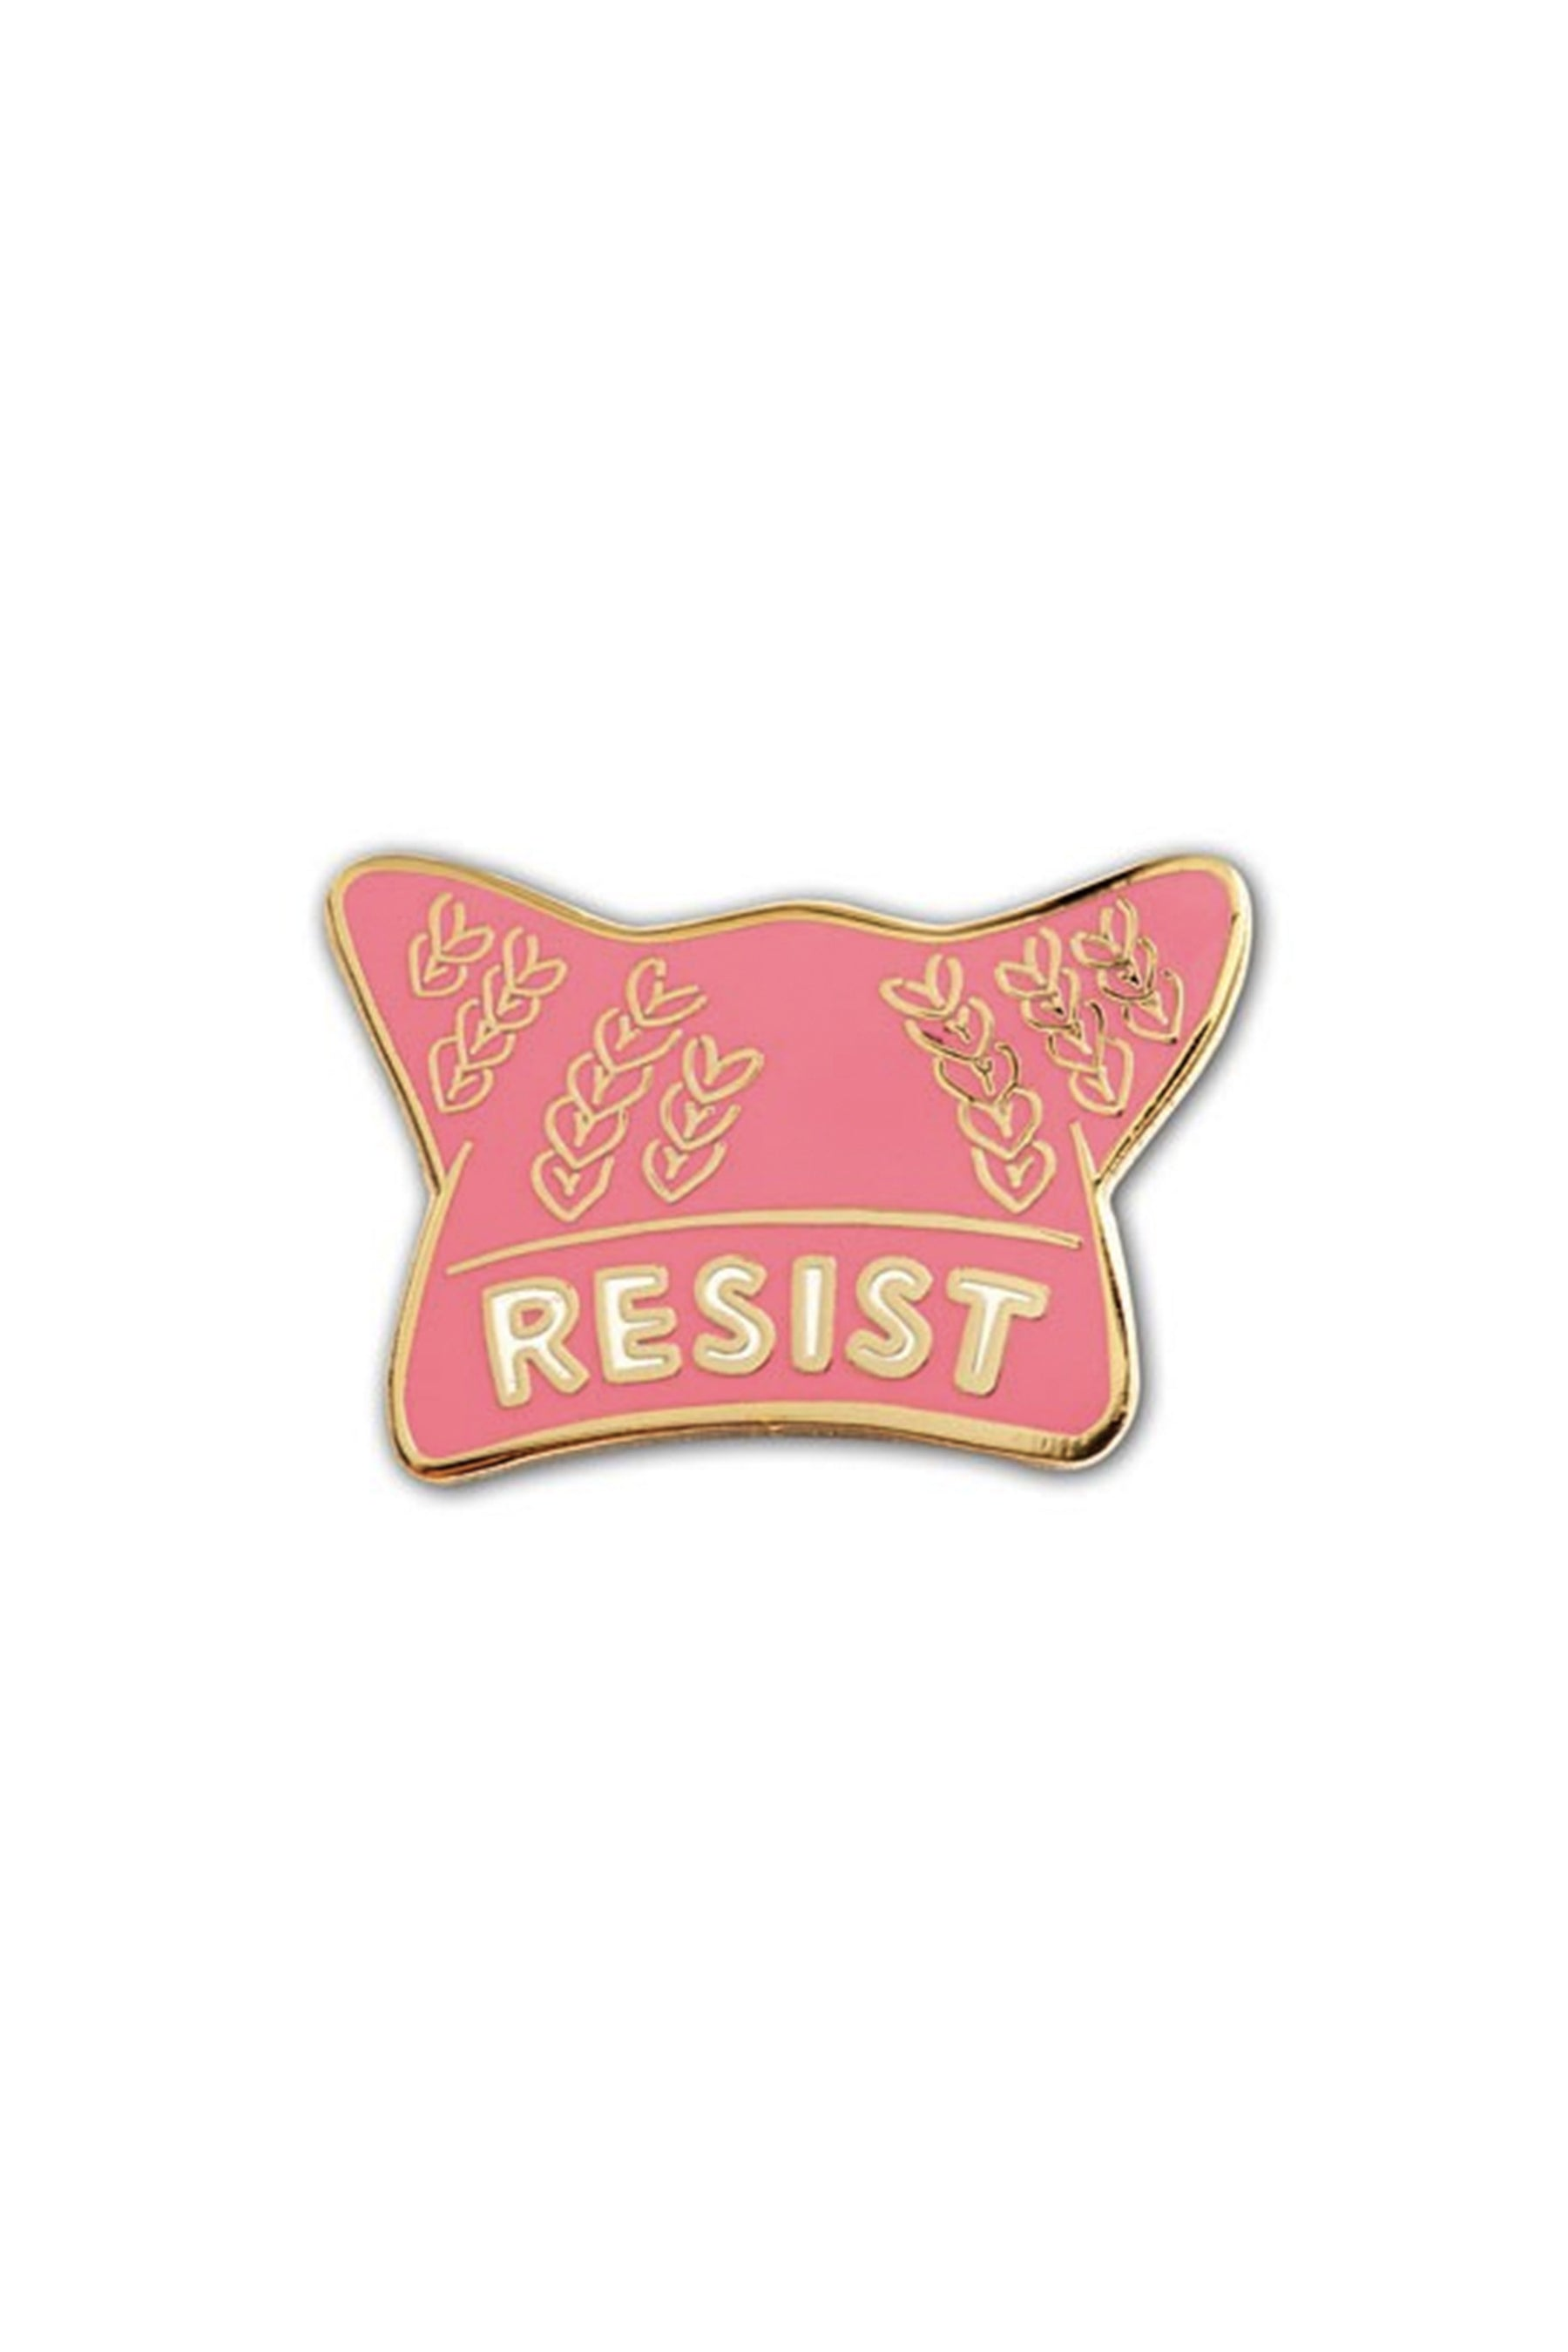 The Found Enamel Pin Resist Pussy Hat